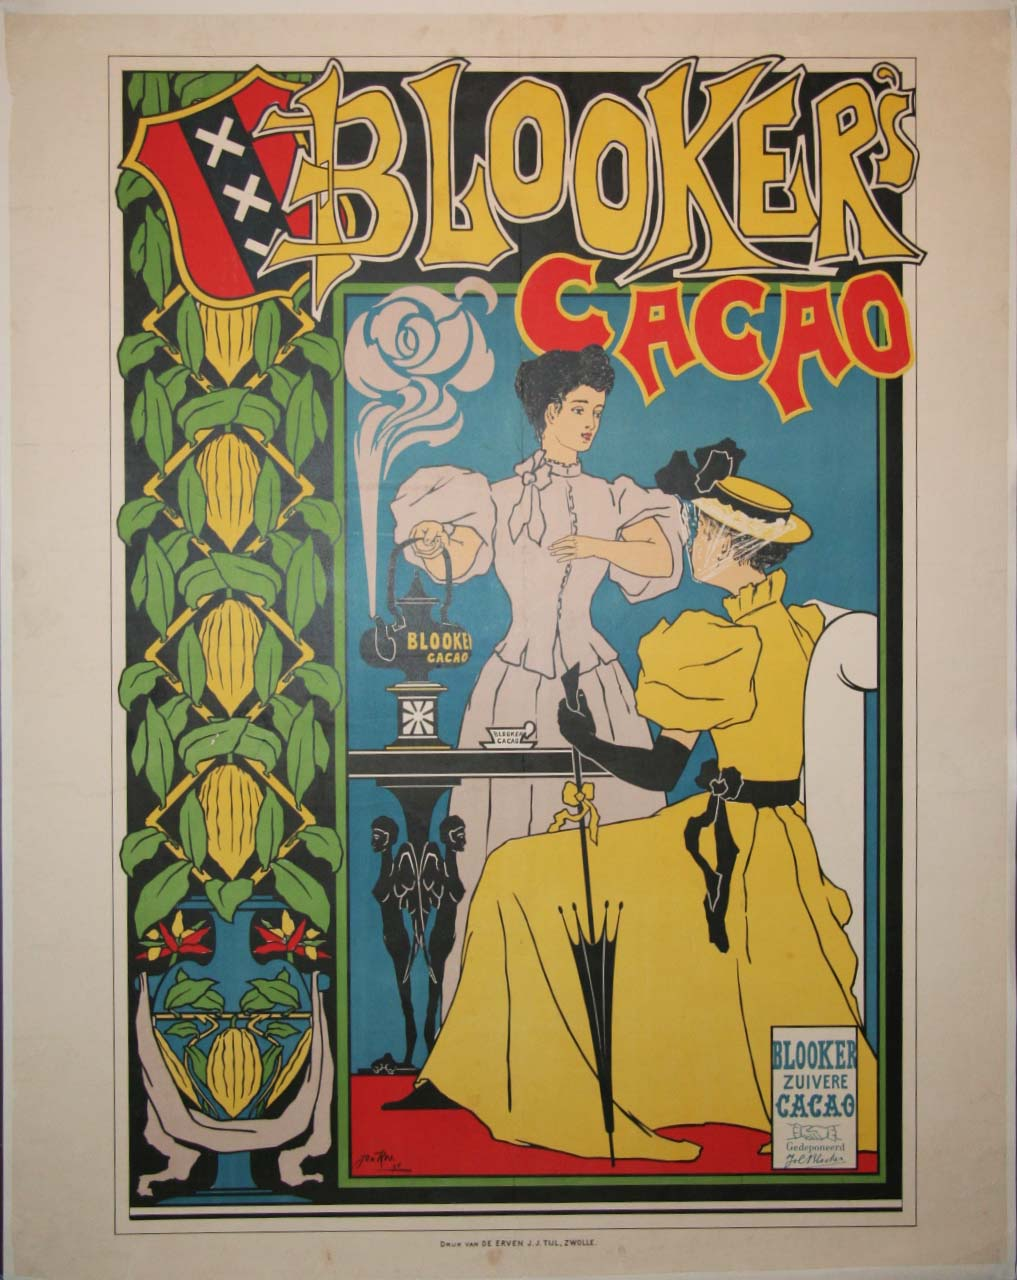 Blooker's Cacao